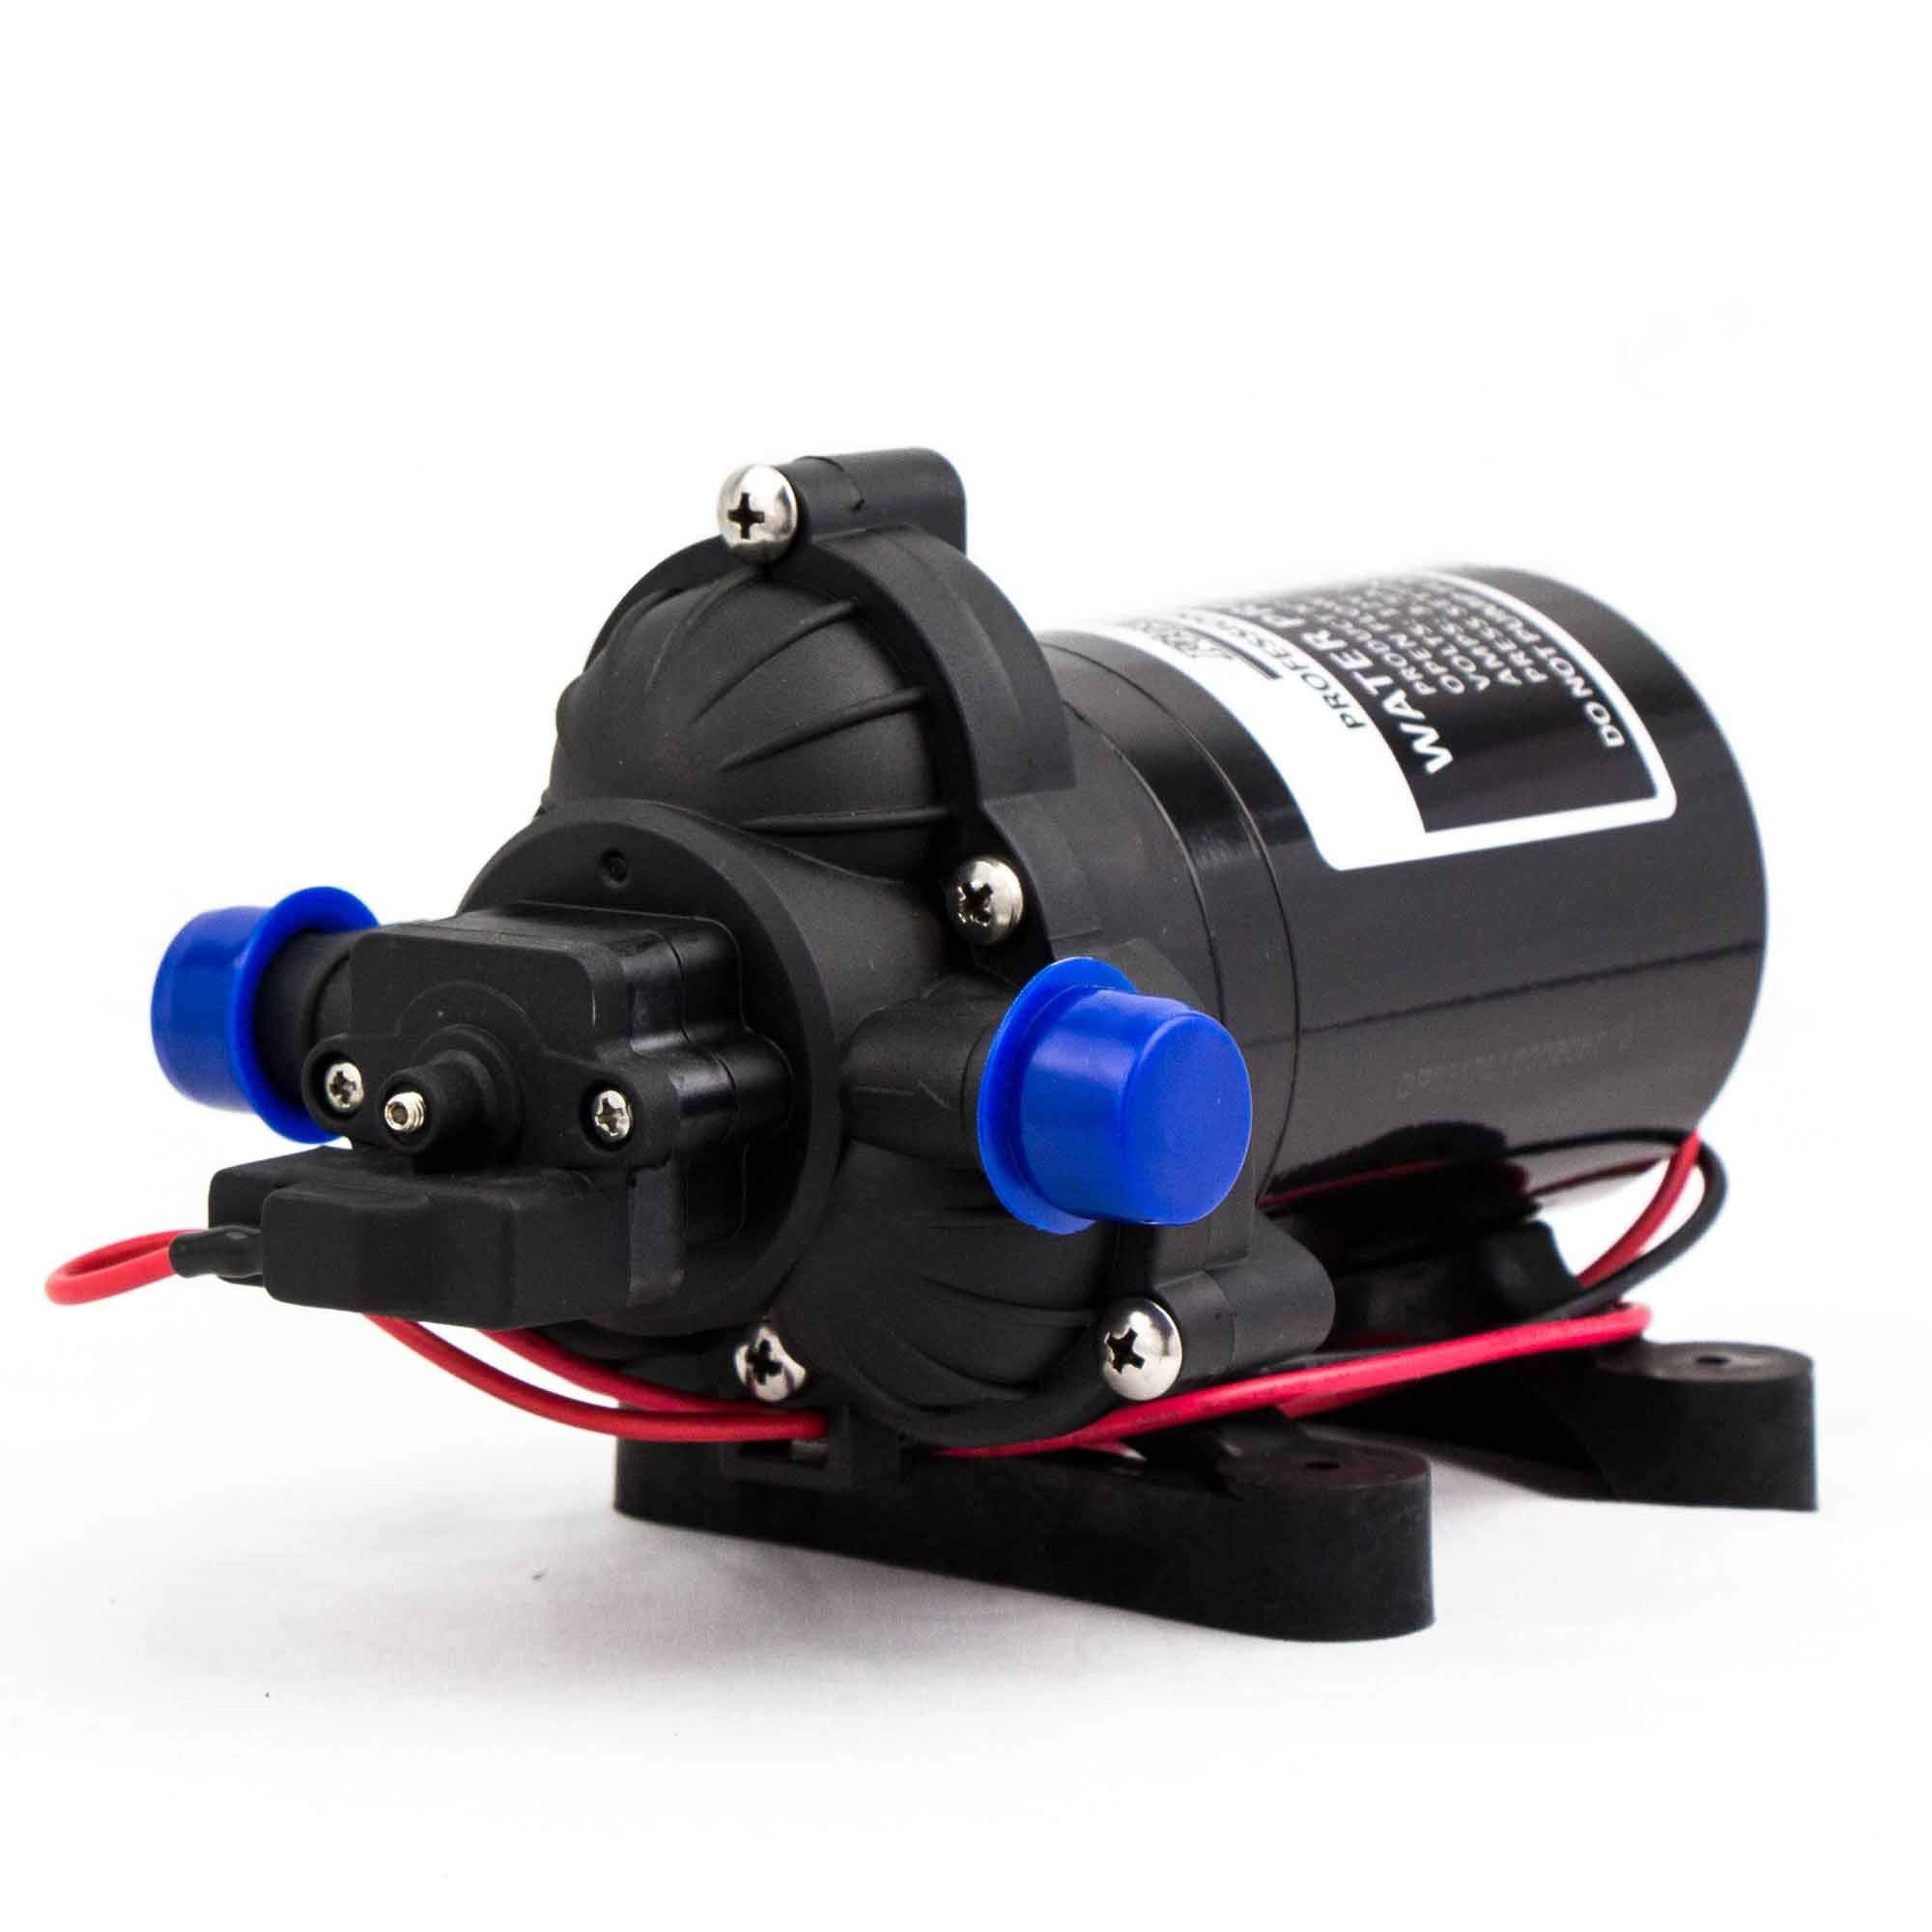 Five Oceans Water Pressure Pump Automatic Diaphragm, 3.0 GPM FO-3605-1 by Five Oceans